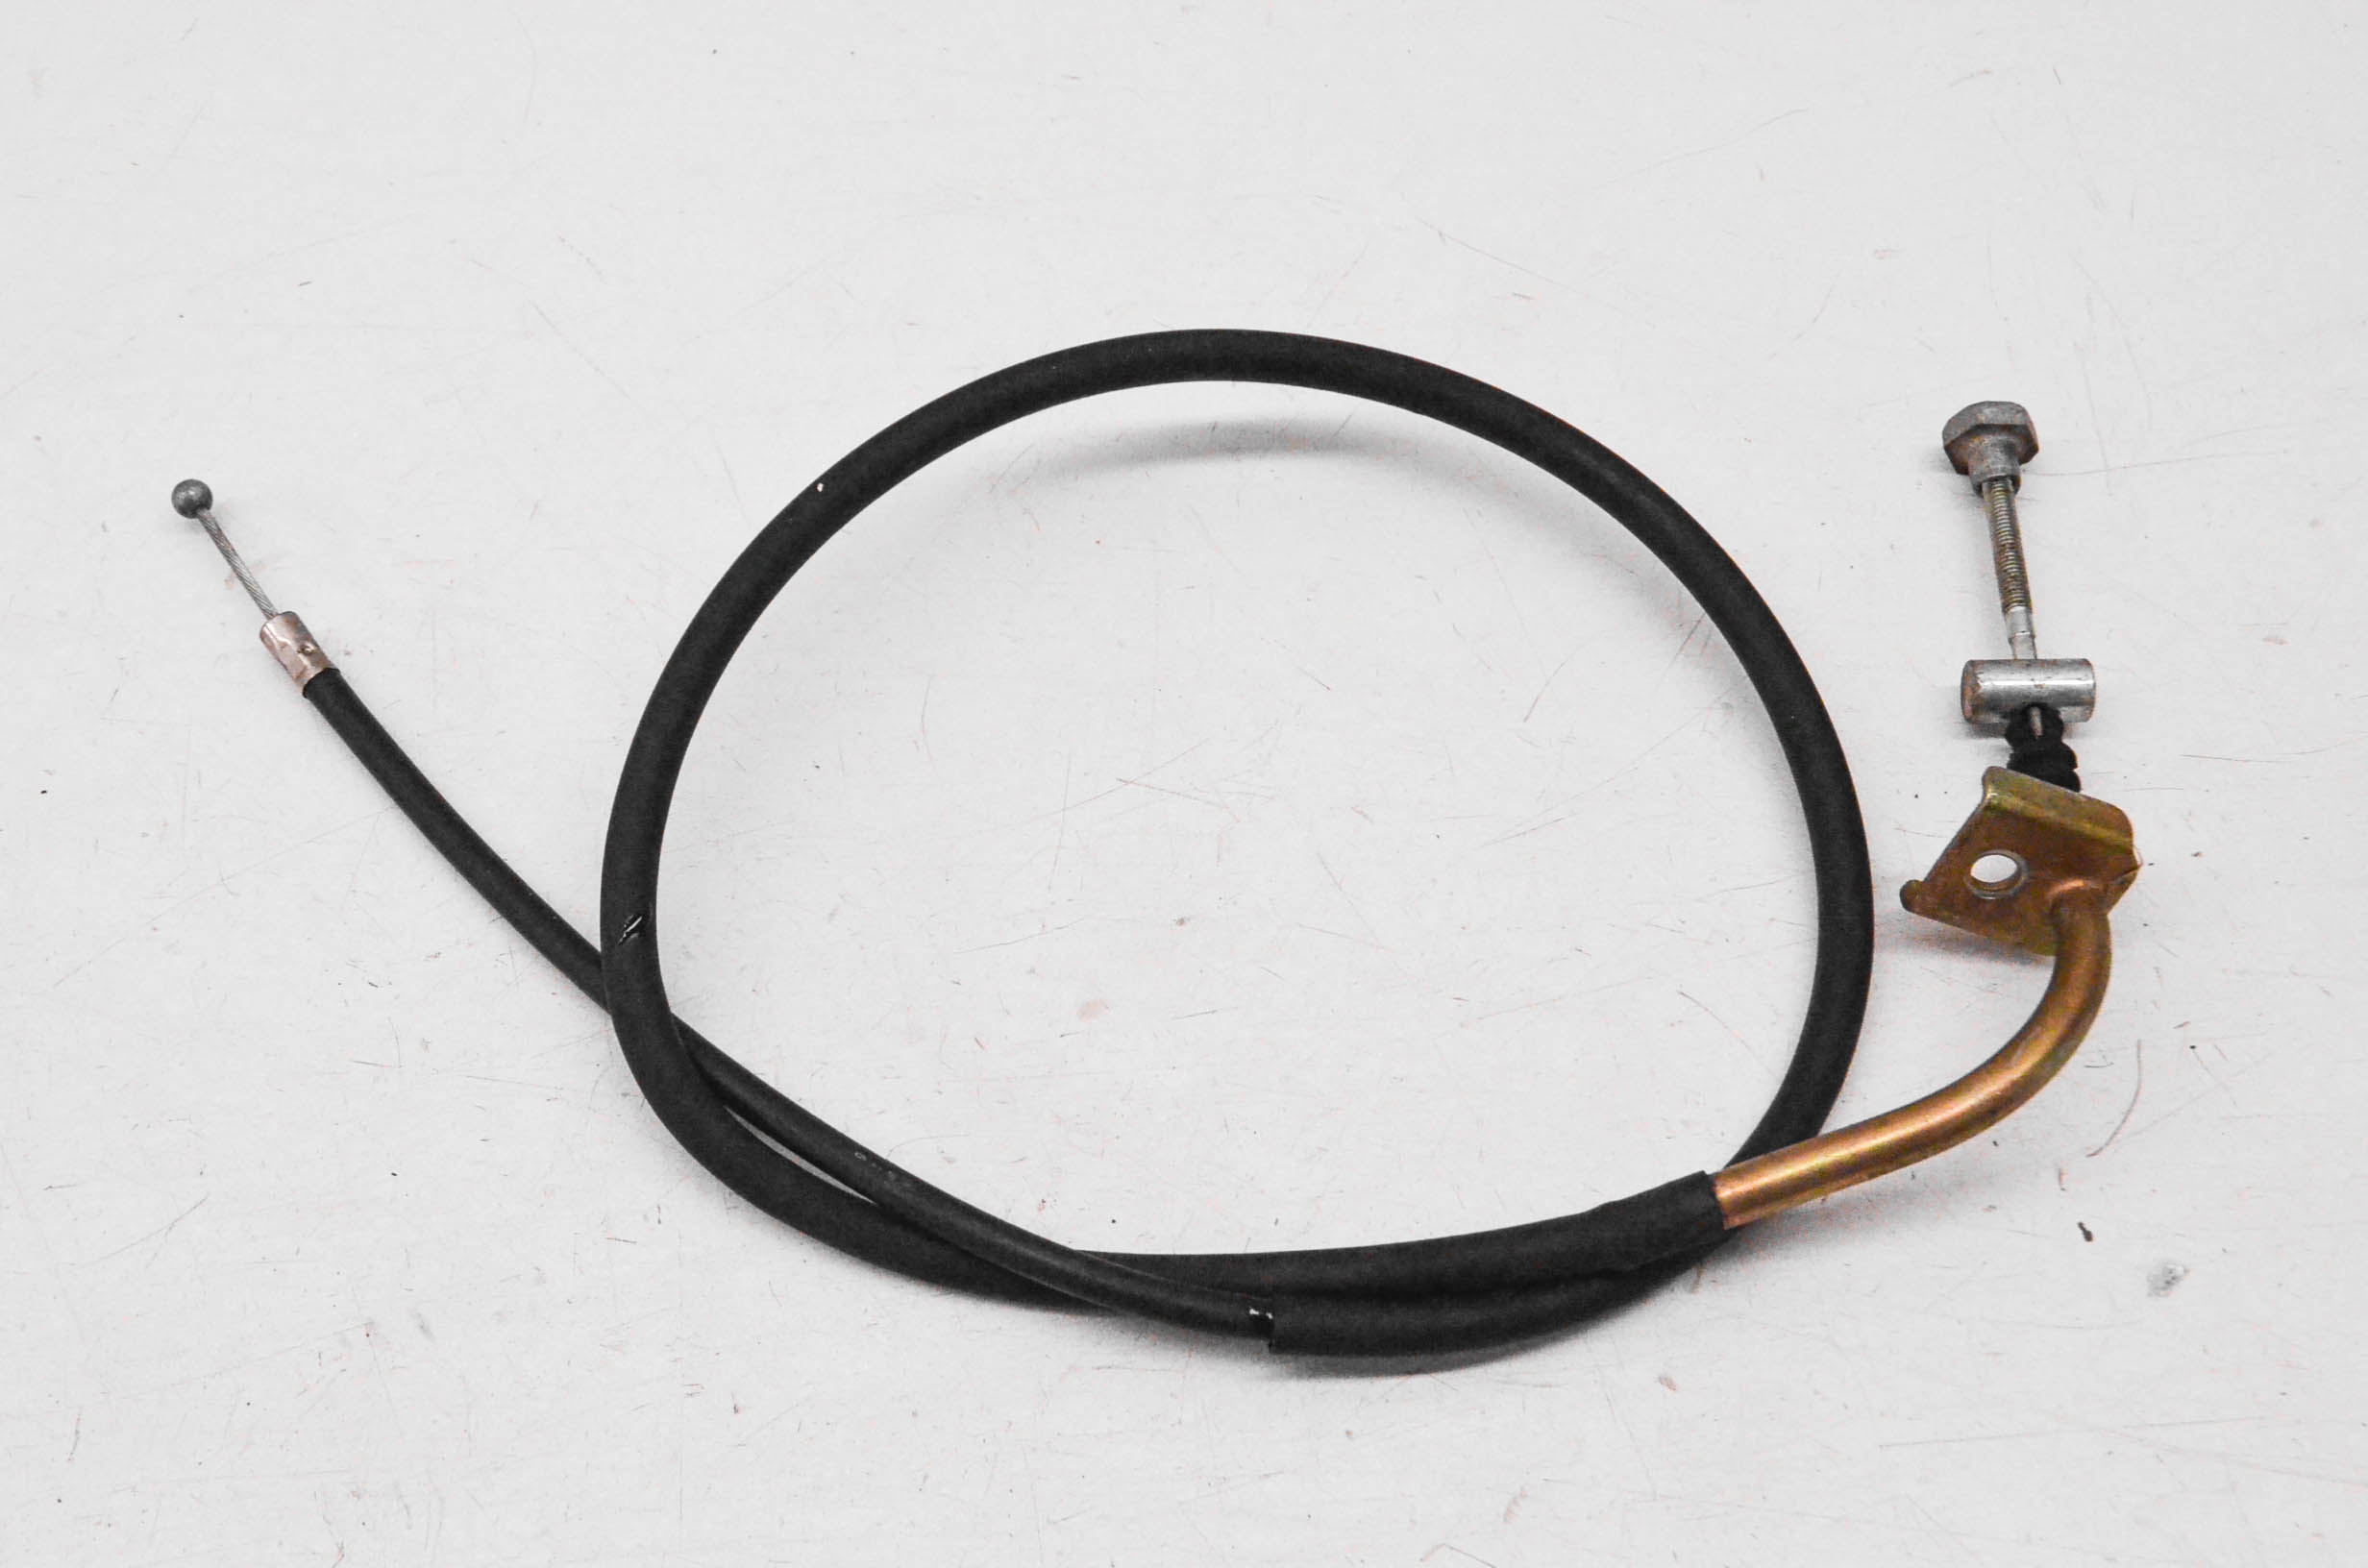 2005 2006 Kawasaki KFX80 KFX 80 Race-Driven Front Brake Cable for ATV 4 Wheeler